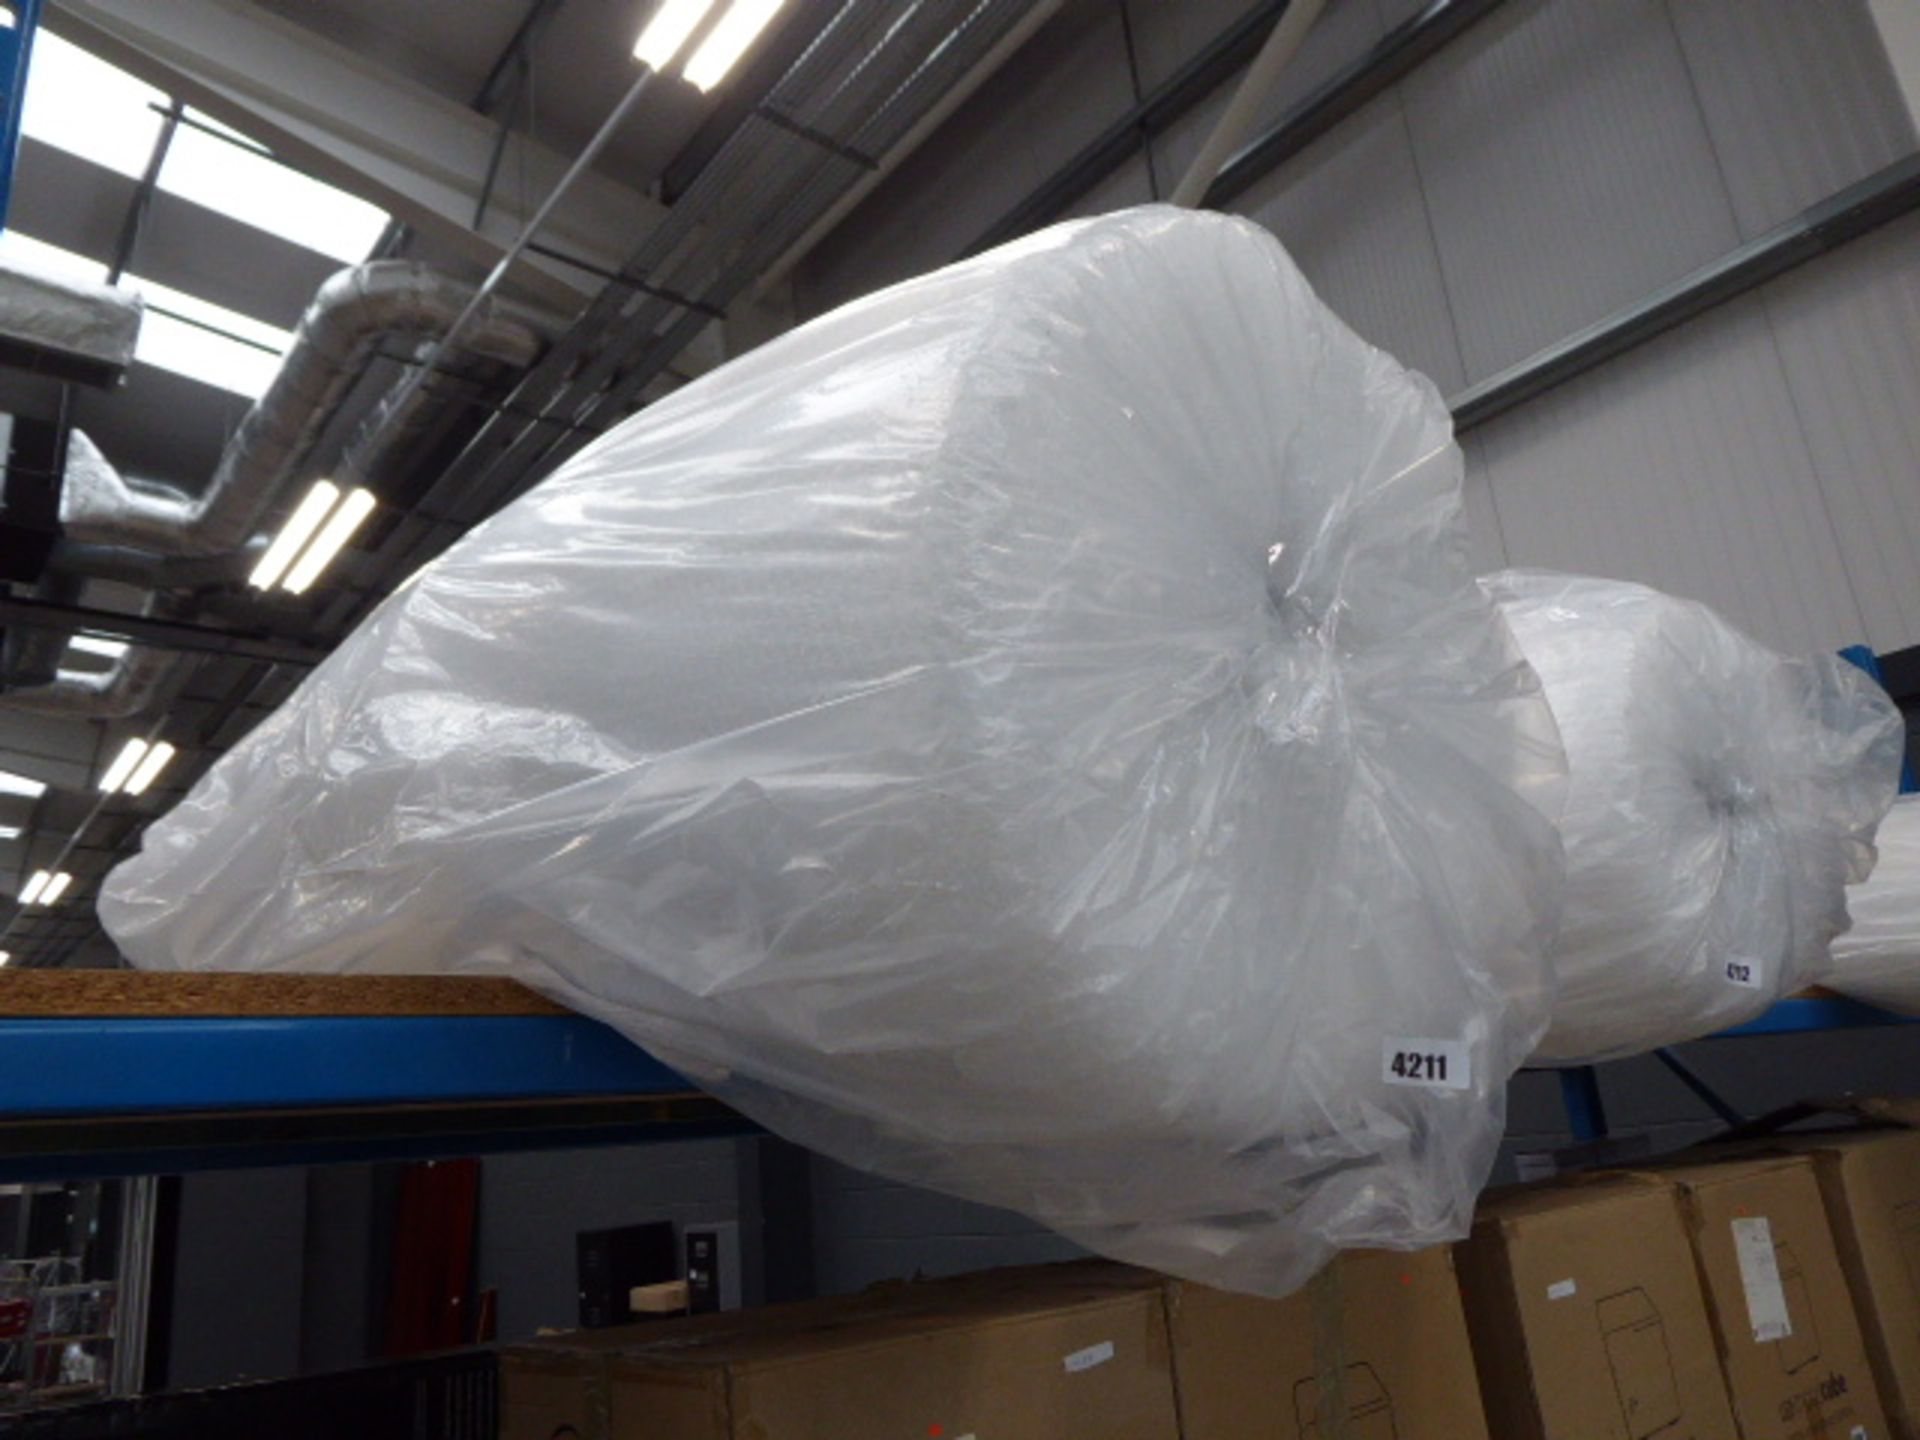 Lot 4211 - Large roll of bubble wrap